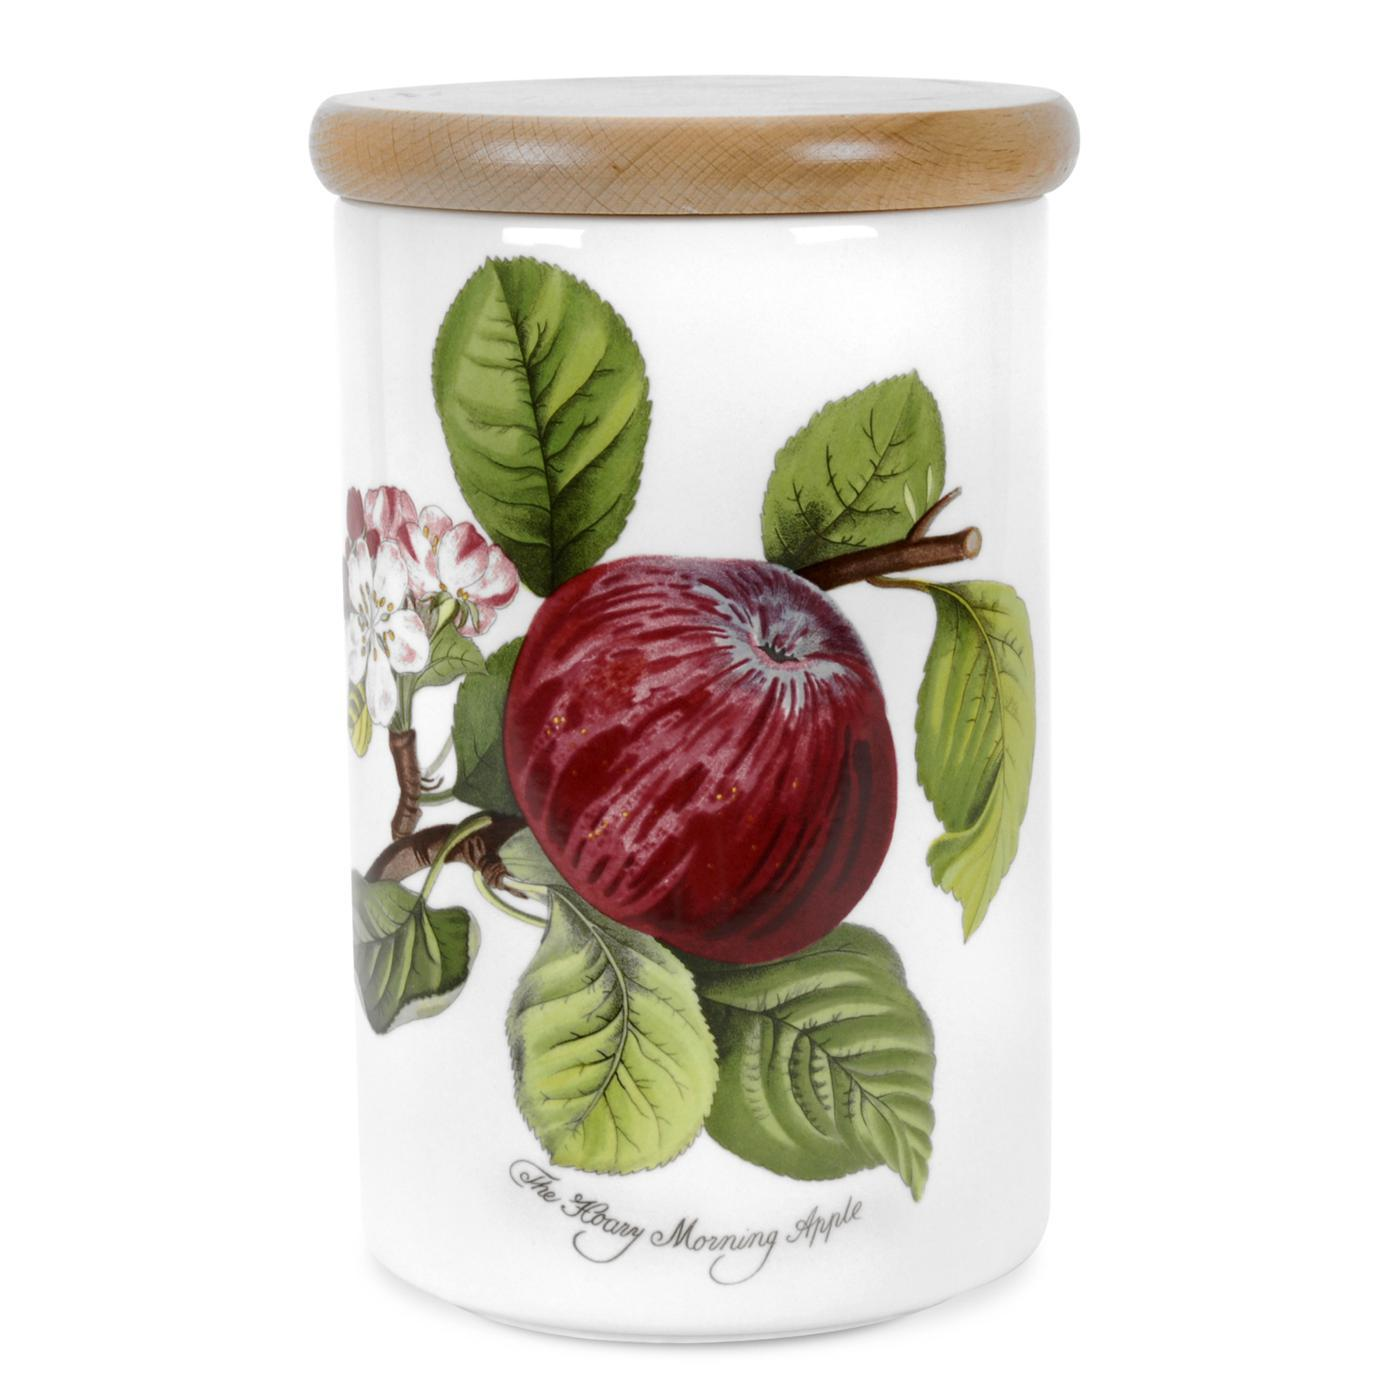 Portmeirion Pomona Medium Airtight Canister (Apple) image number 0